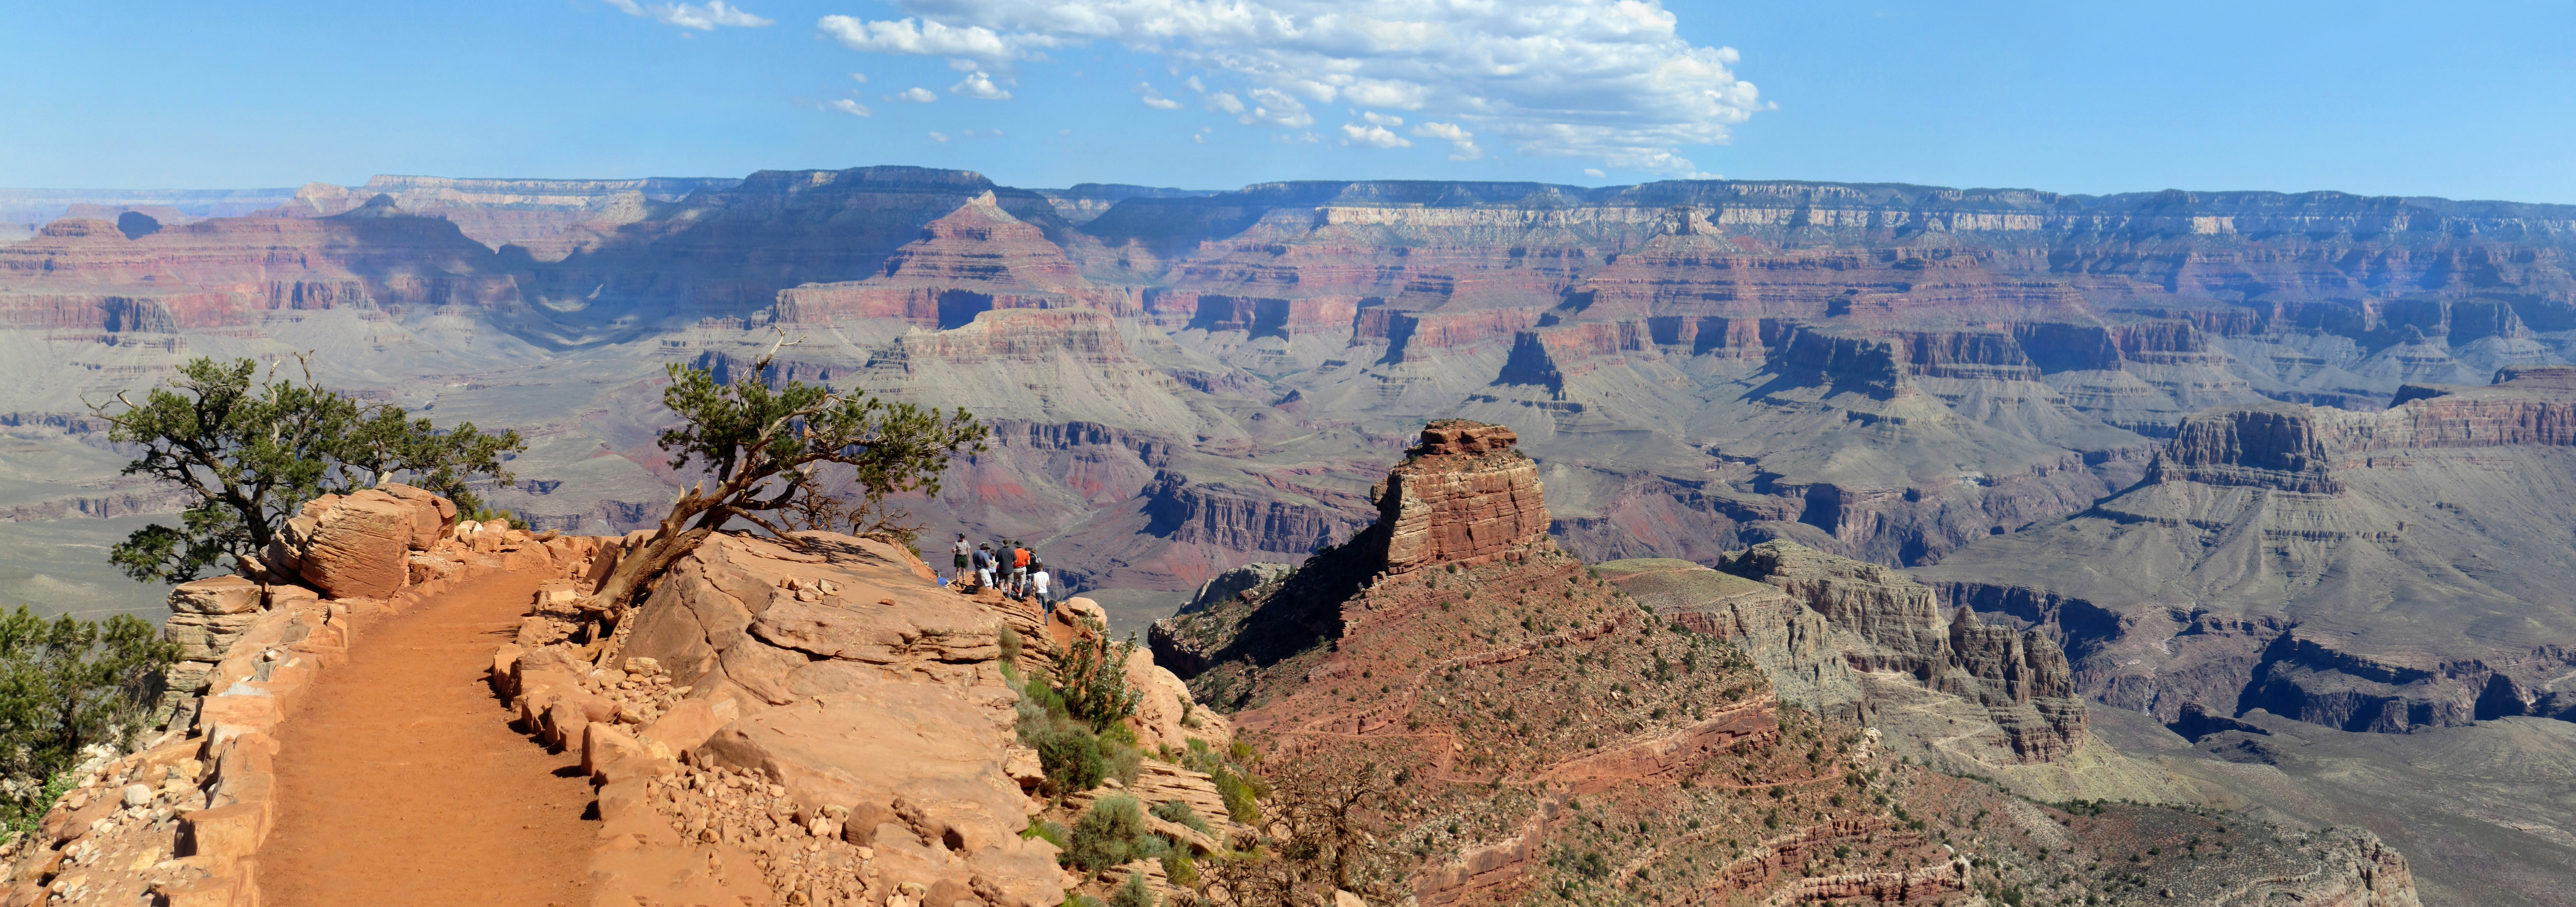 File Grand Canyon National Park Ranger Guided Hike To